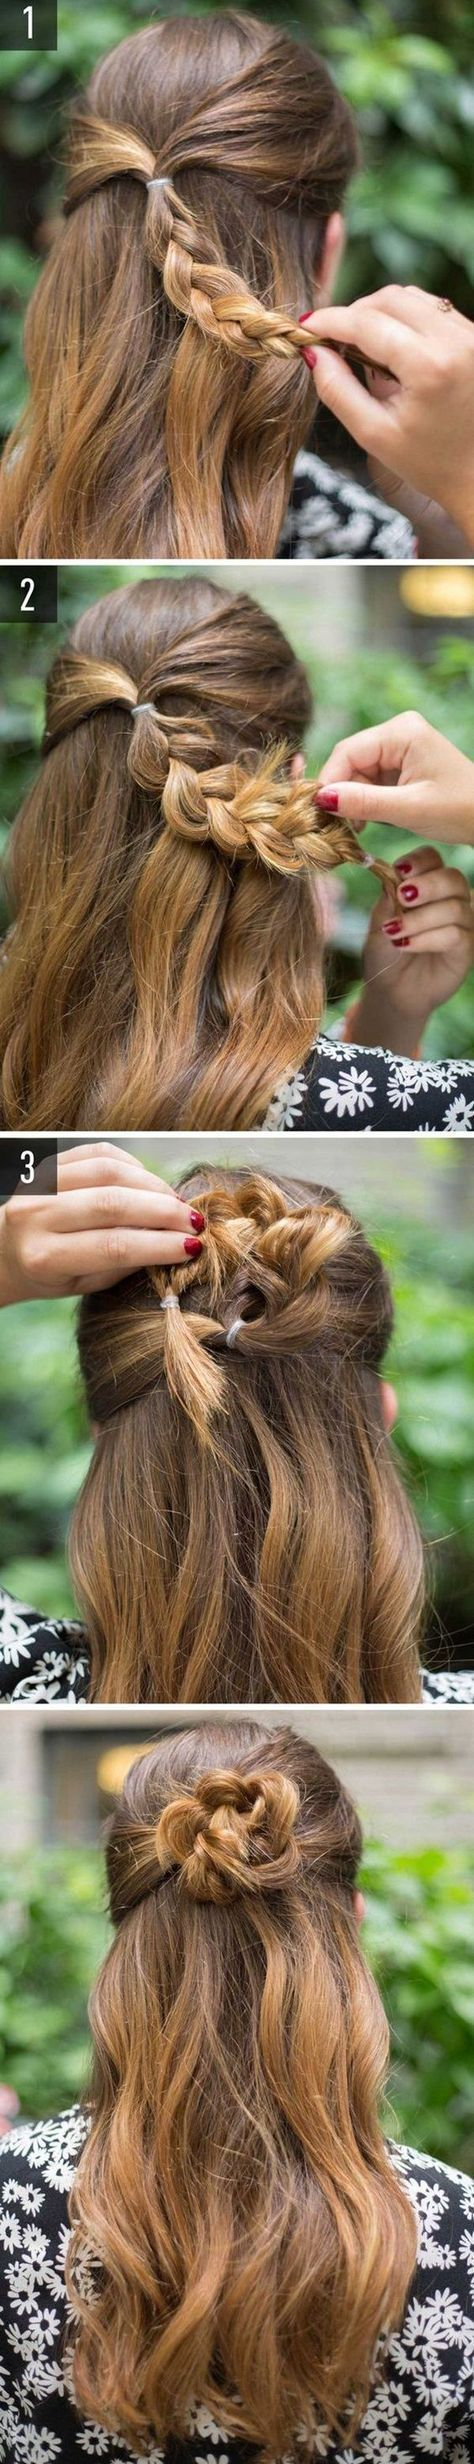 easy hairstyles for schools to try in quick easy cute and